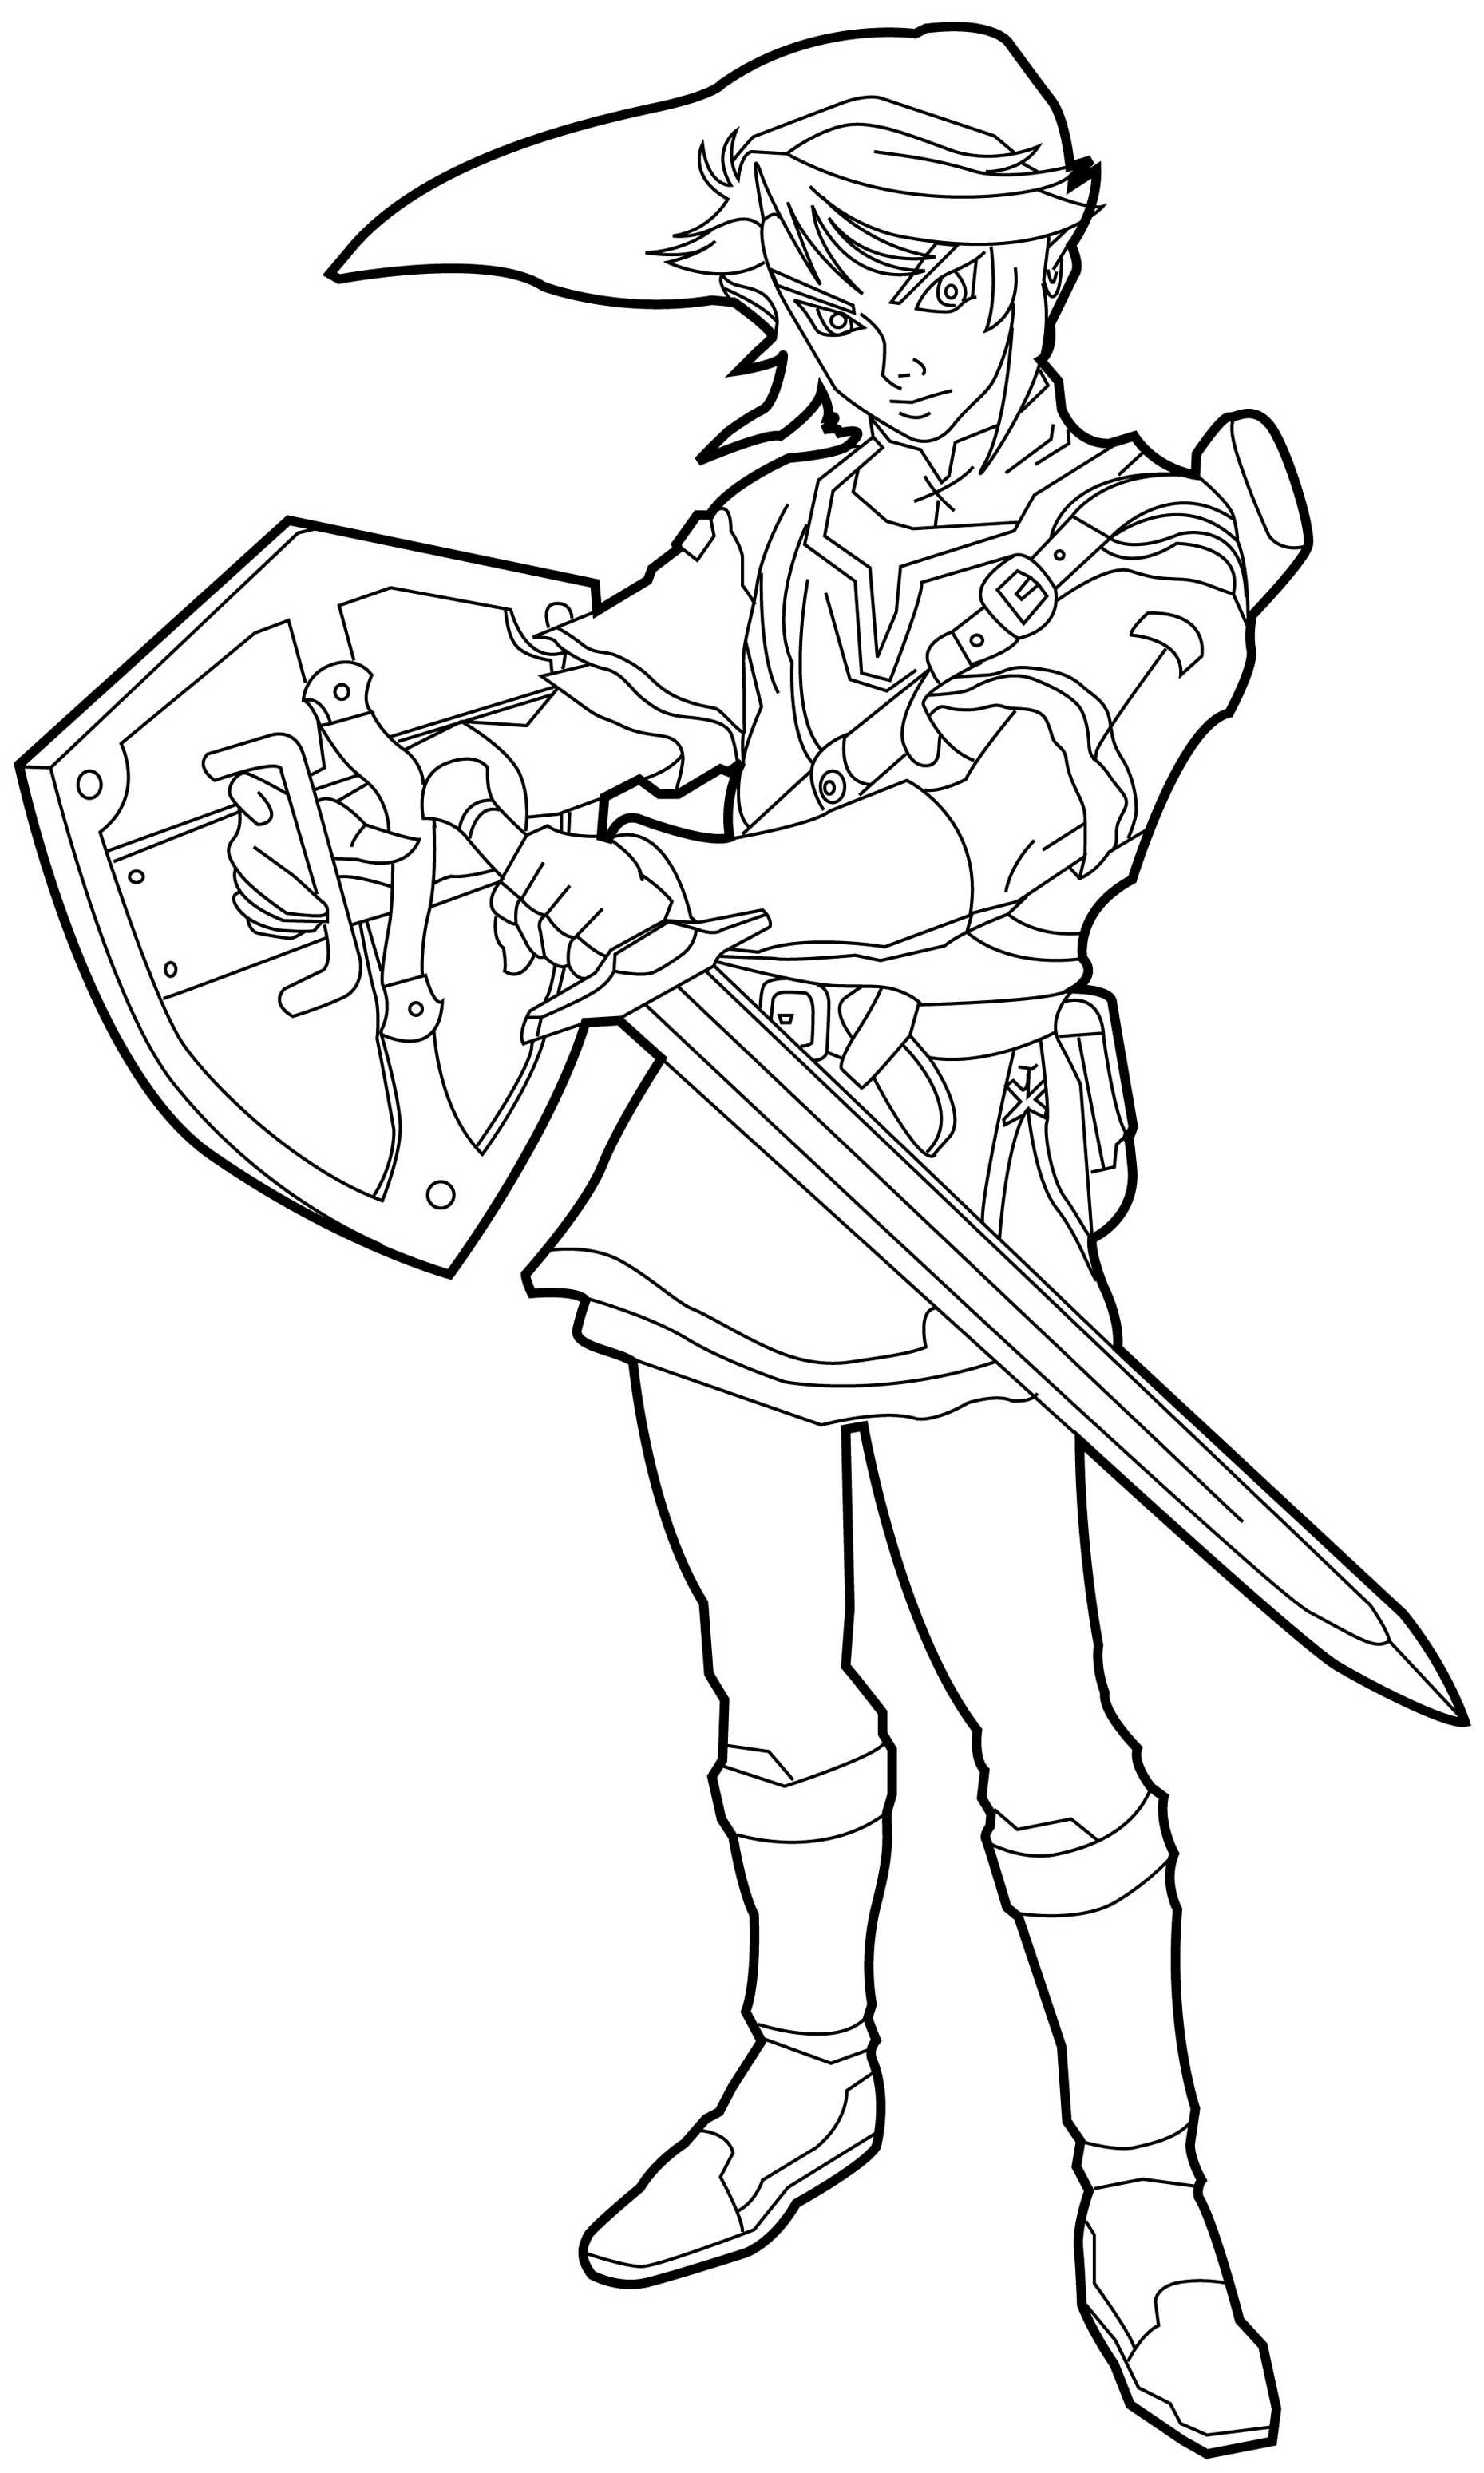 Free Zelda Coloring Pages Coloring Pages For Kids Coloring Pages Free Coloring Pages